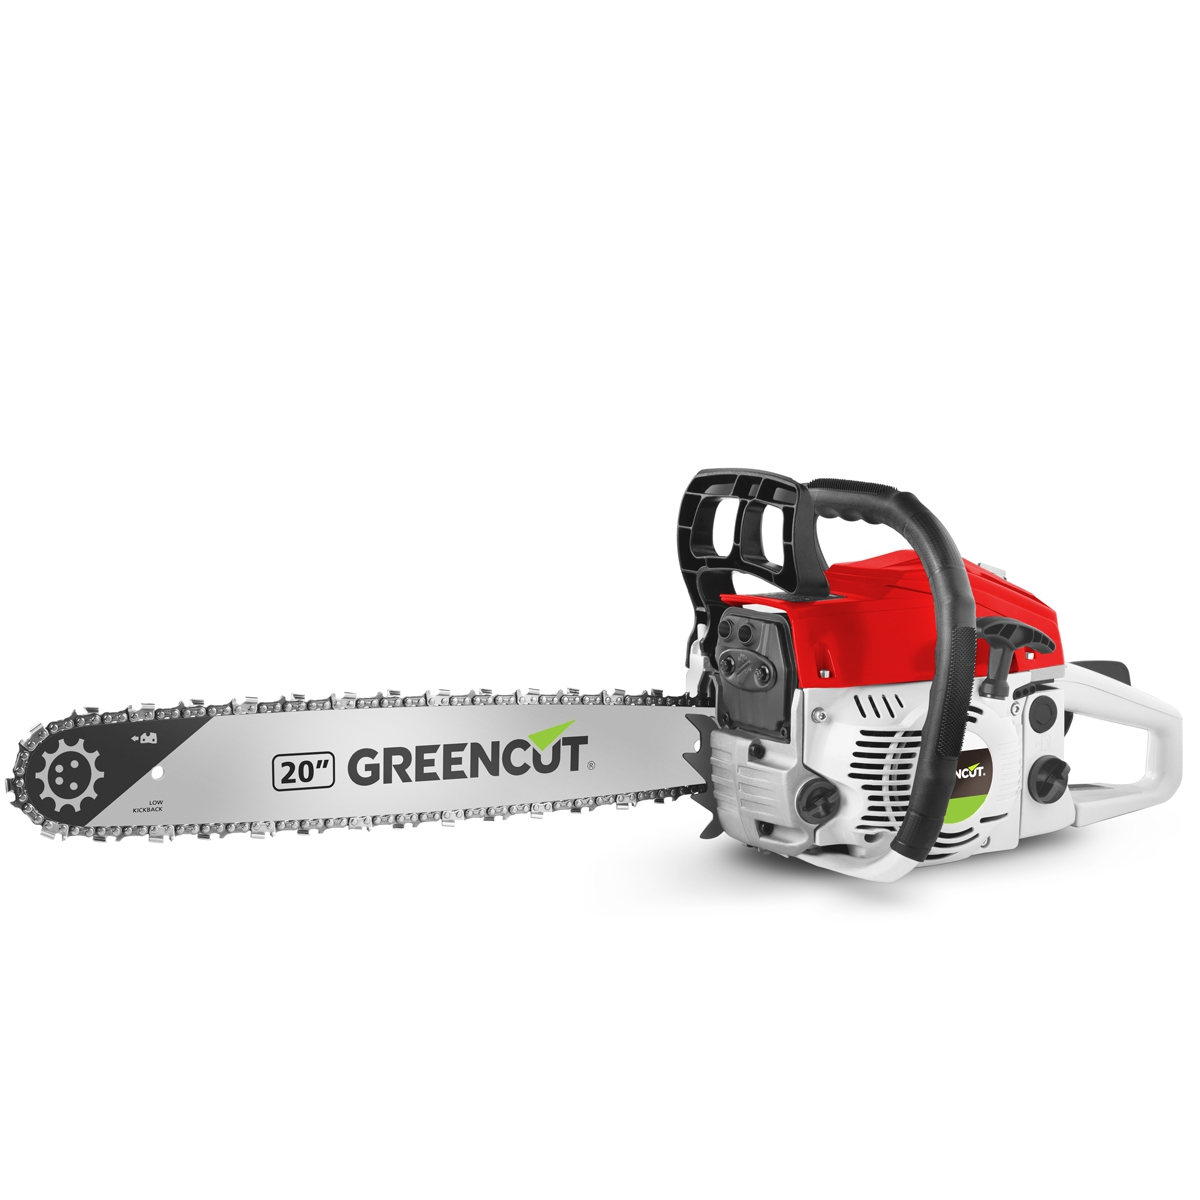 Chainsaw Gasoline GREENCUT 61,2cc And 3,6cv And Sword-20 '', Anti-Vibration System, Chainsaw Logging And Pruning Lightweight And Powerful